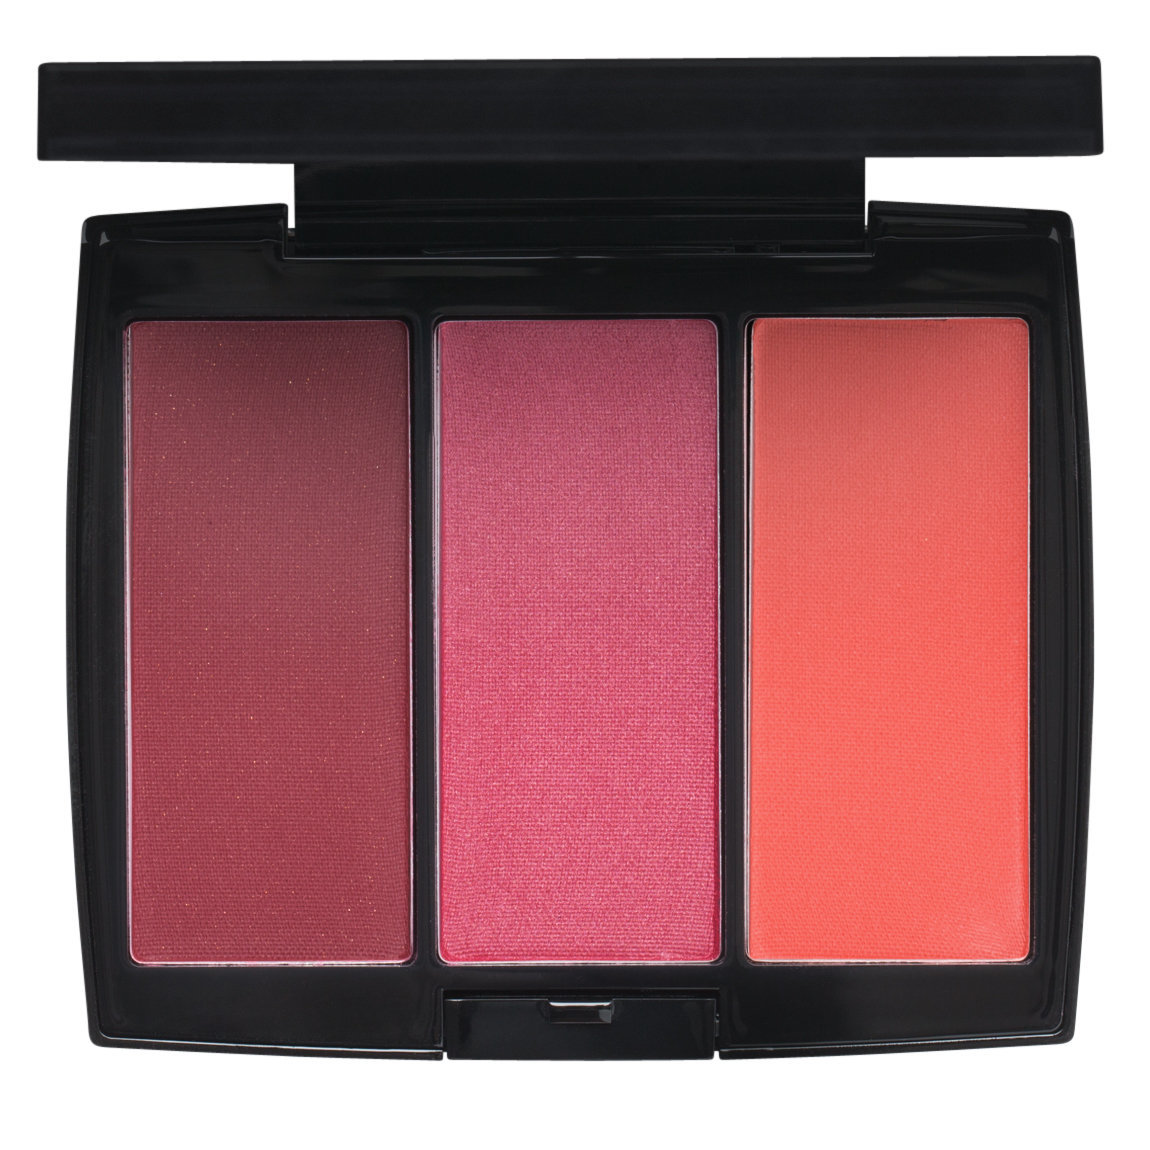 Anastasia Beverly Hills Blush Trio Berry Adore alternative view 1 - product swatch.